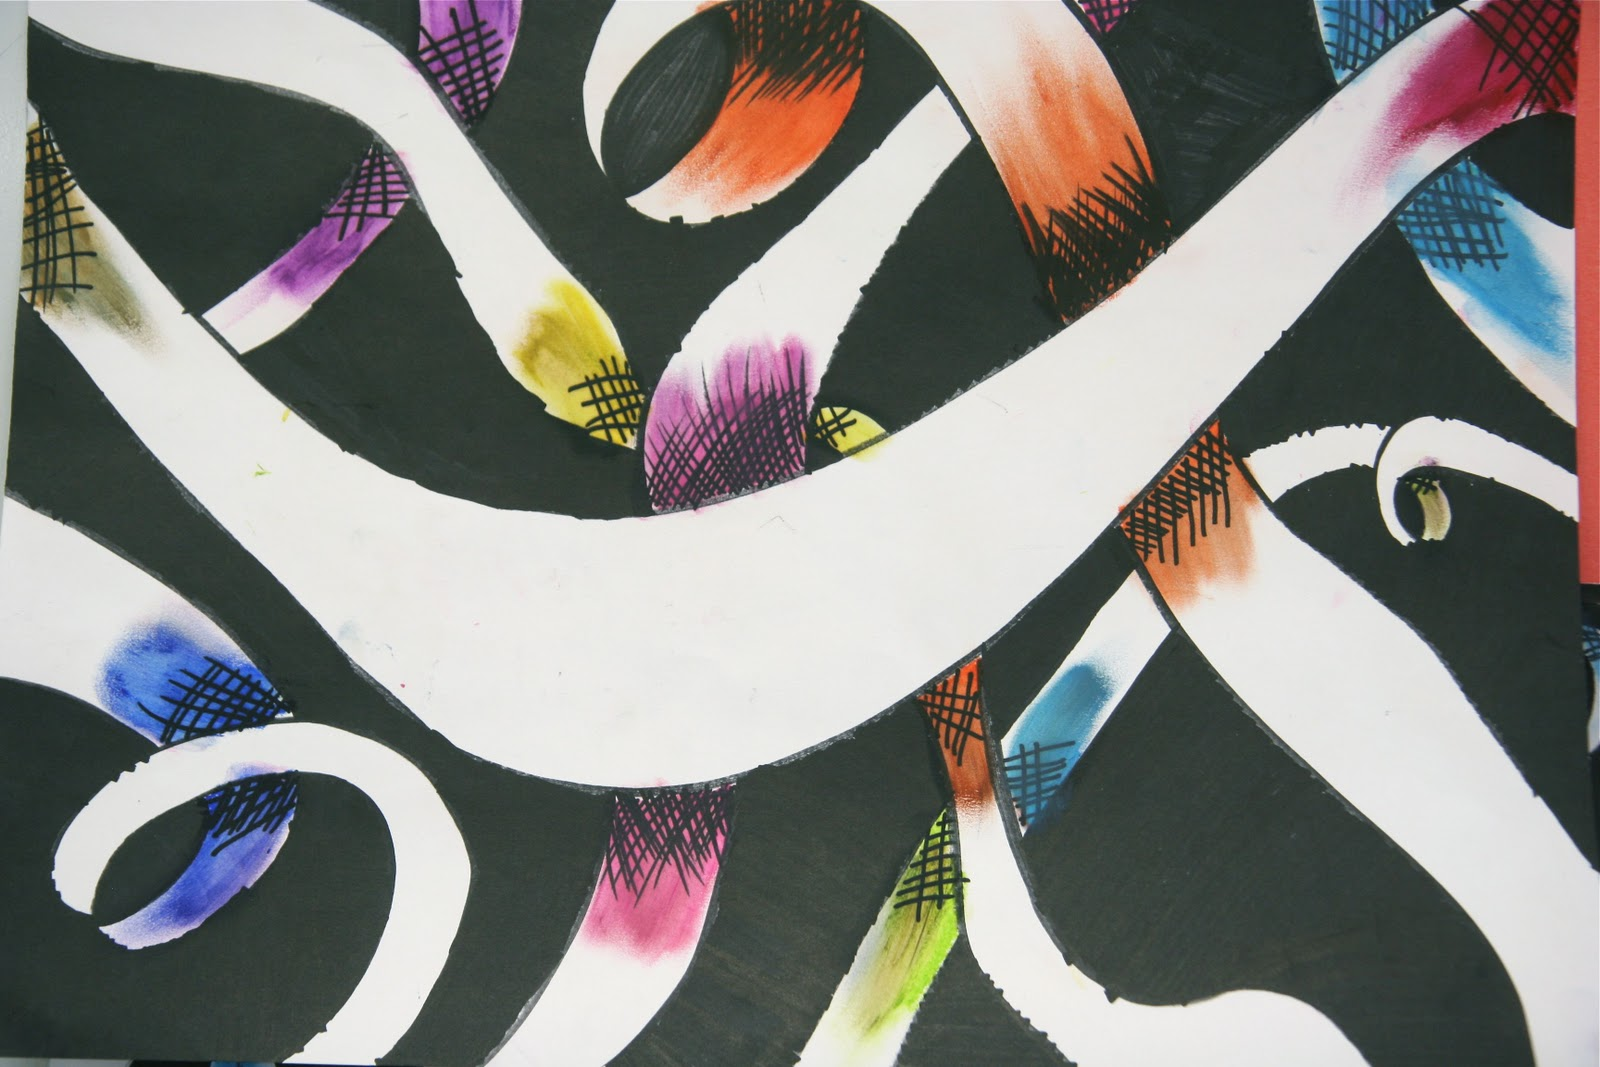 Curved Line Design Art : Abstract wave element for design stylized line art background